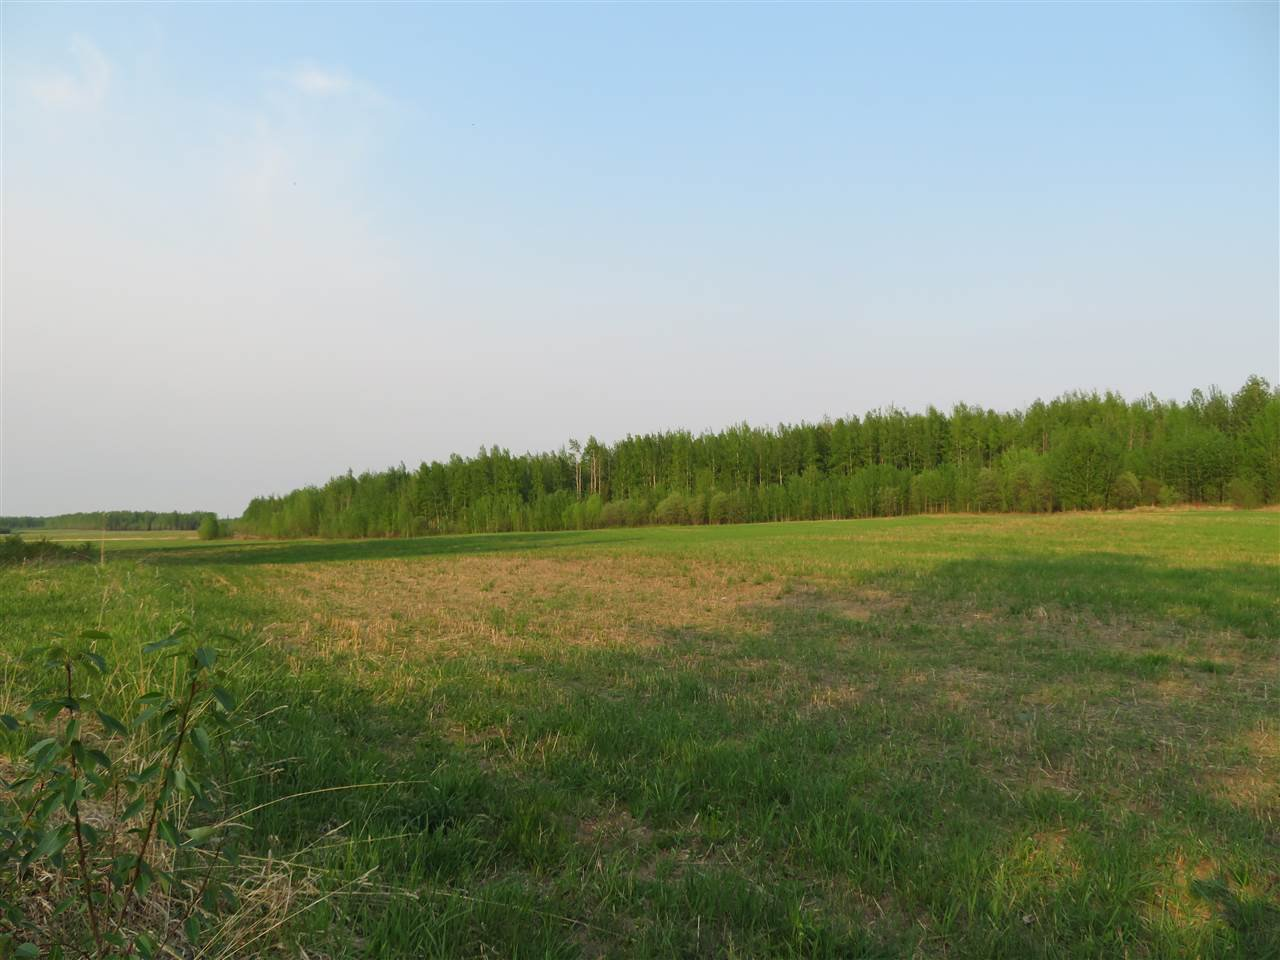 Main Photo: TAZMA CRESCENT in Fort Nelson: Fort Nelson - Rural Land for sale (Fort Nelson (Zone 64))  : MLS®# R2327603